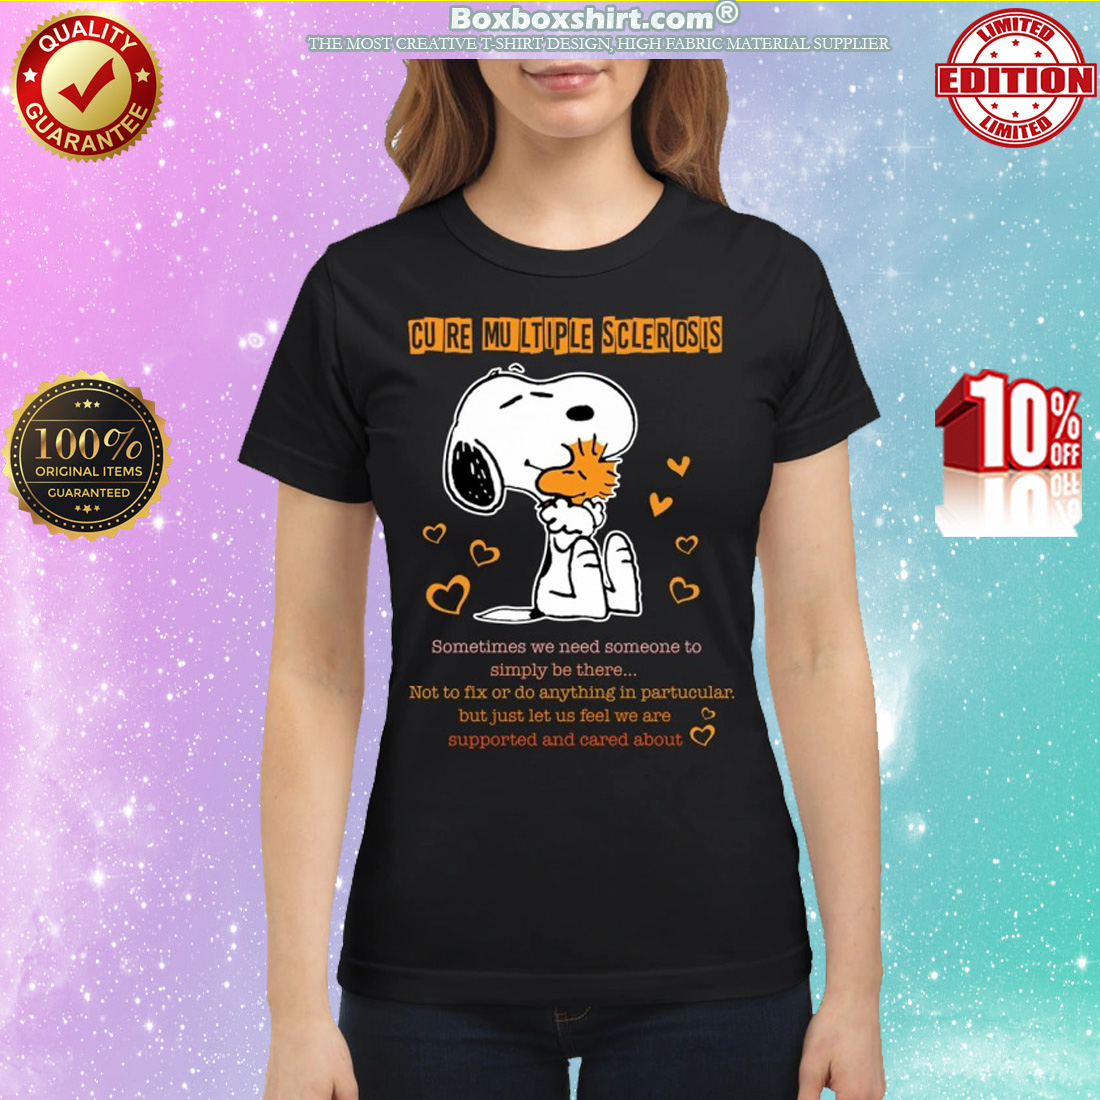 Snoopy and woodstock cure multiple sclerosis classic shirt